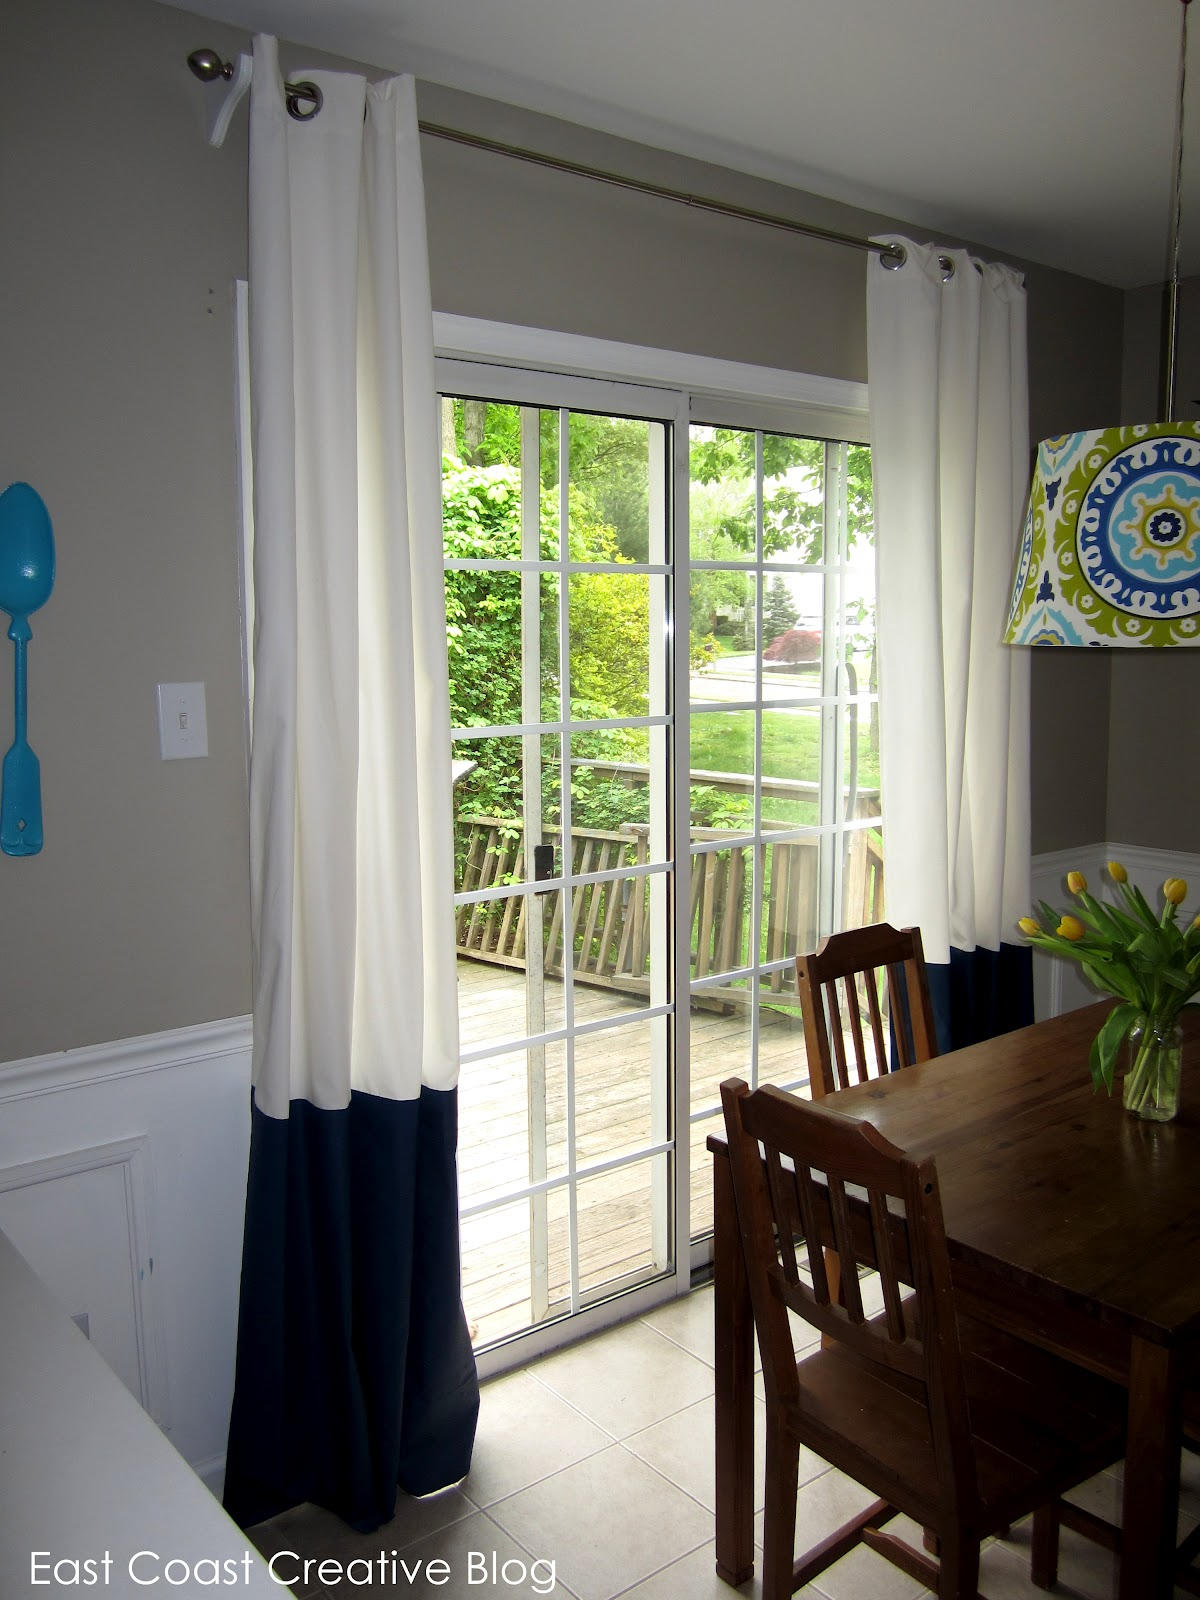 17 Images About Build Ikea Panel Curtain On Pinterest: The Curtain Solution {DIY Painted Curtains}